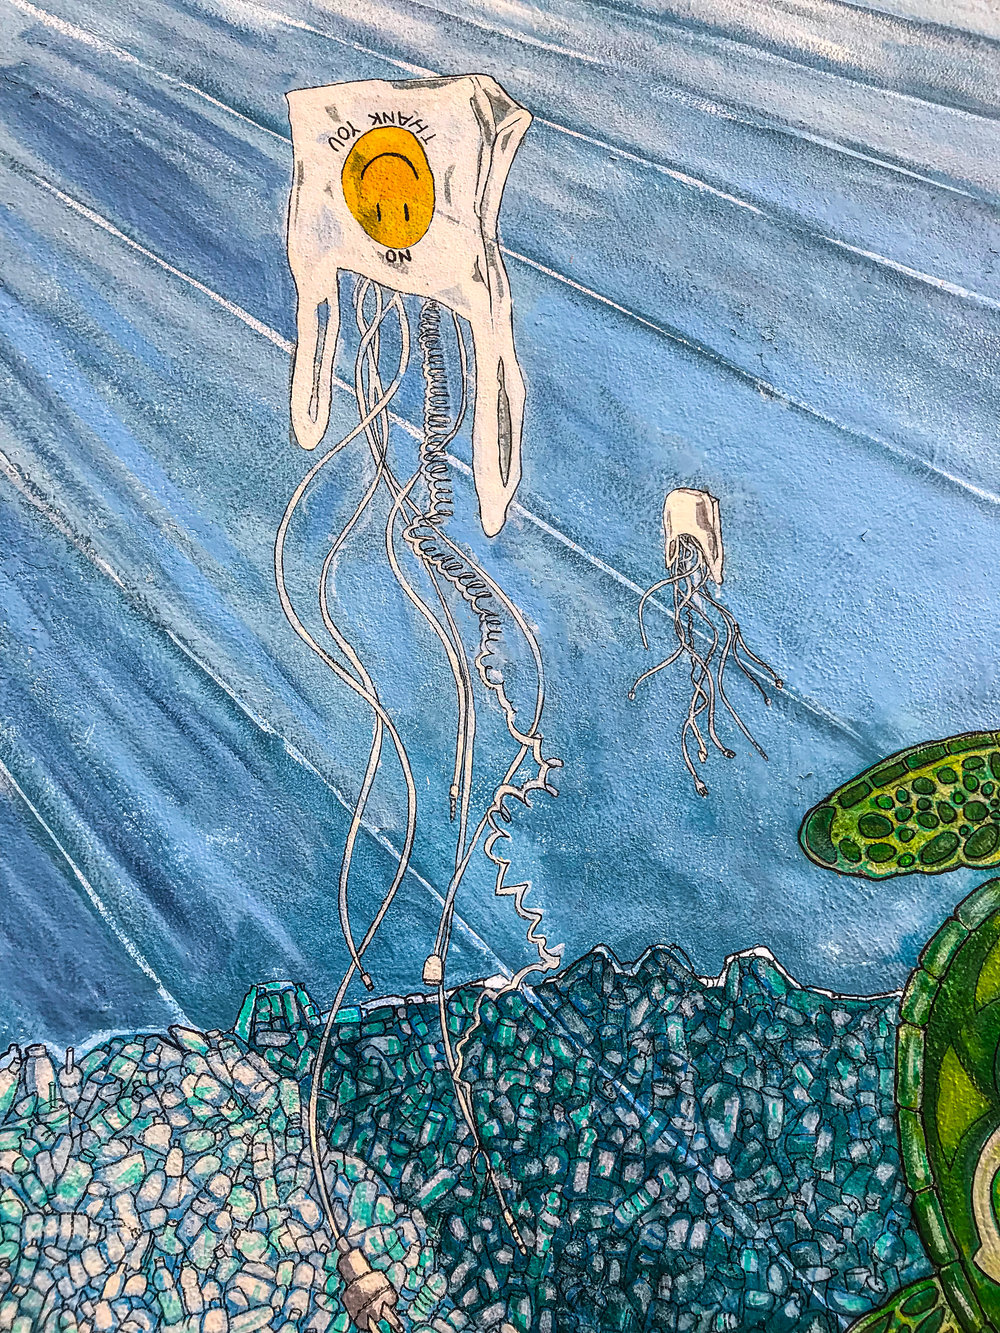 Plastic Bag and Charger Jellyfish, Photo Credit: Liz Summit, 2017